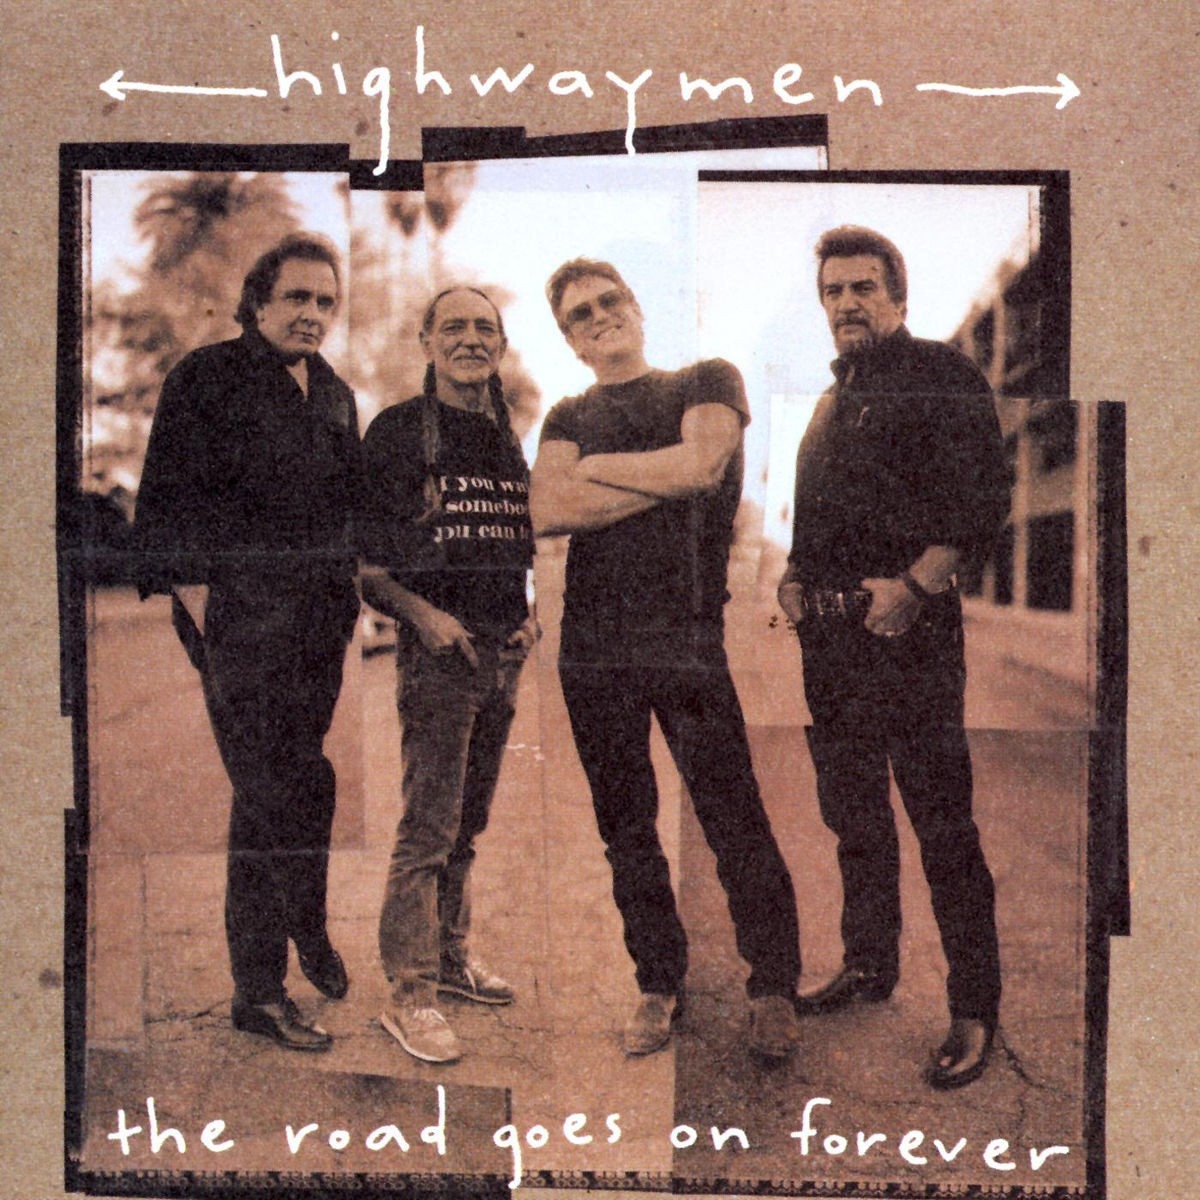 The Highwaymen - The Road Goes On Forever CD - 07243 4745070